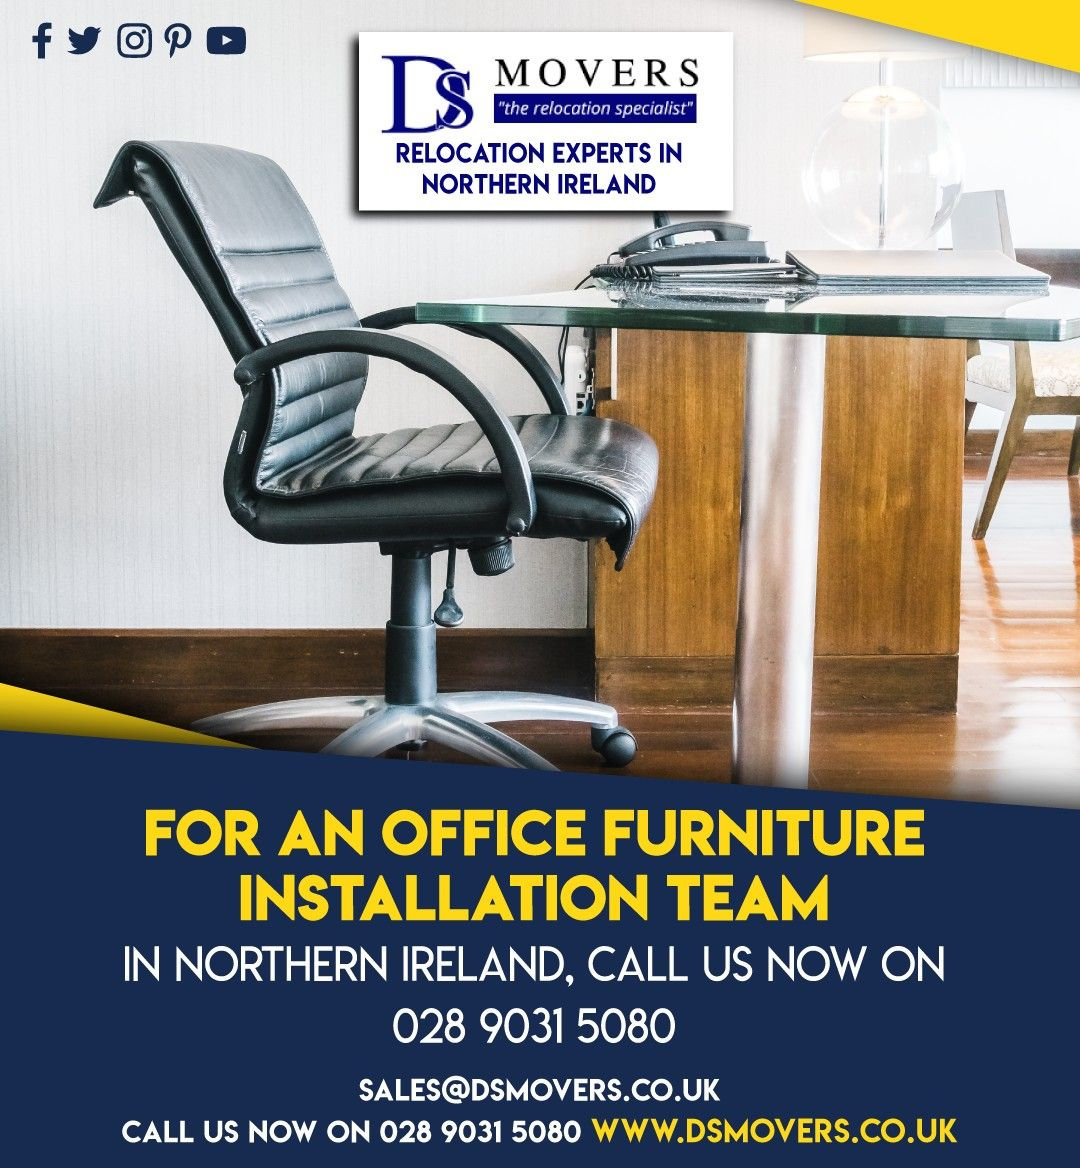 For An Office Furniture Installation Team In Northern Ireland